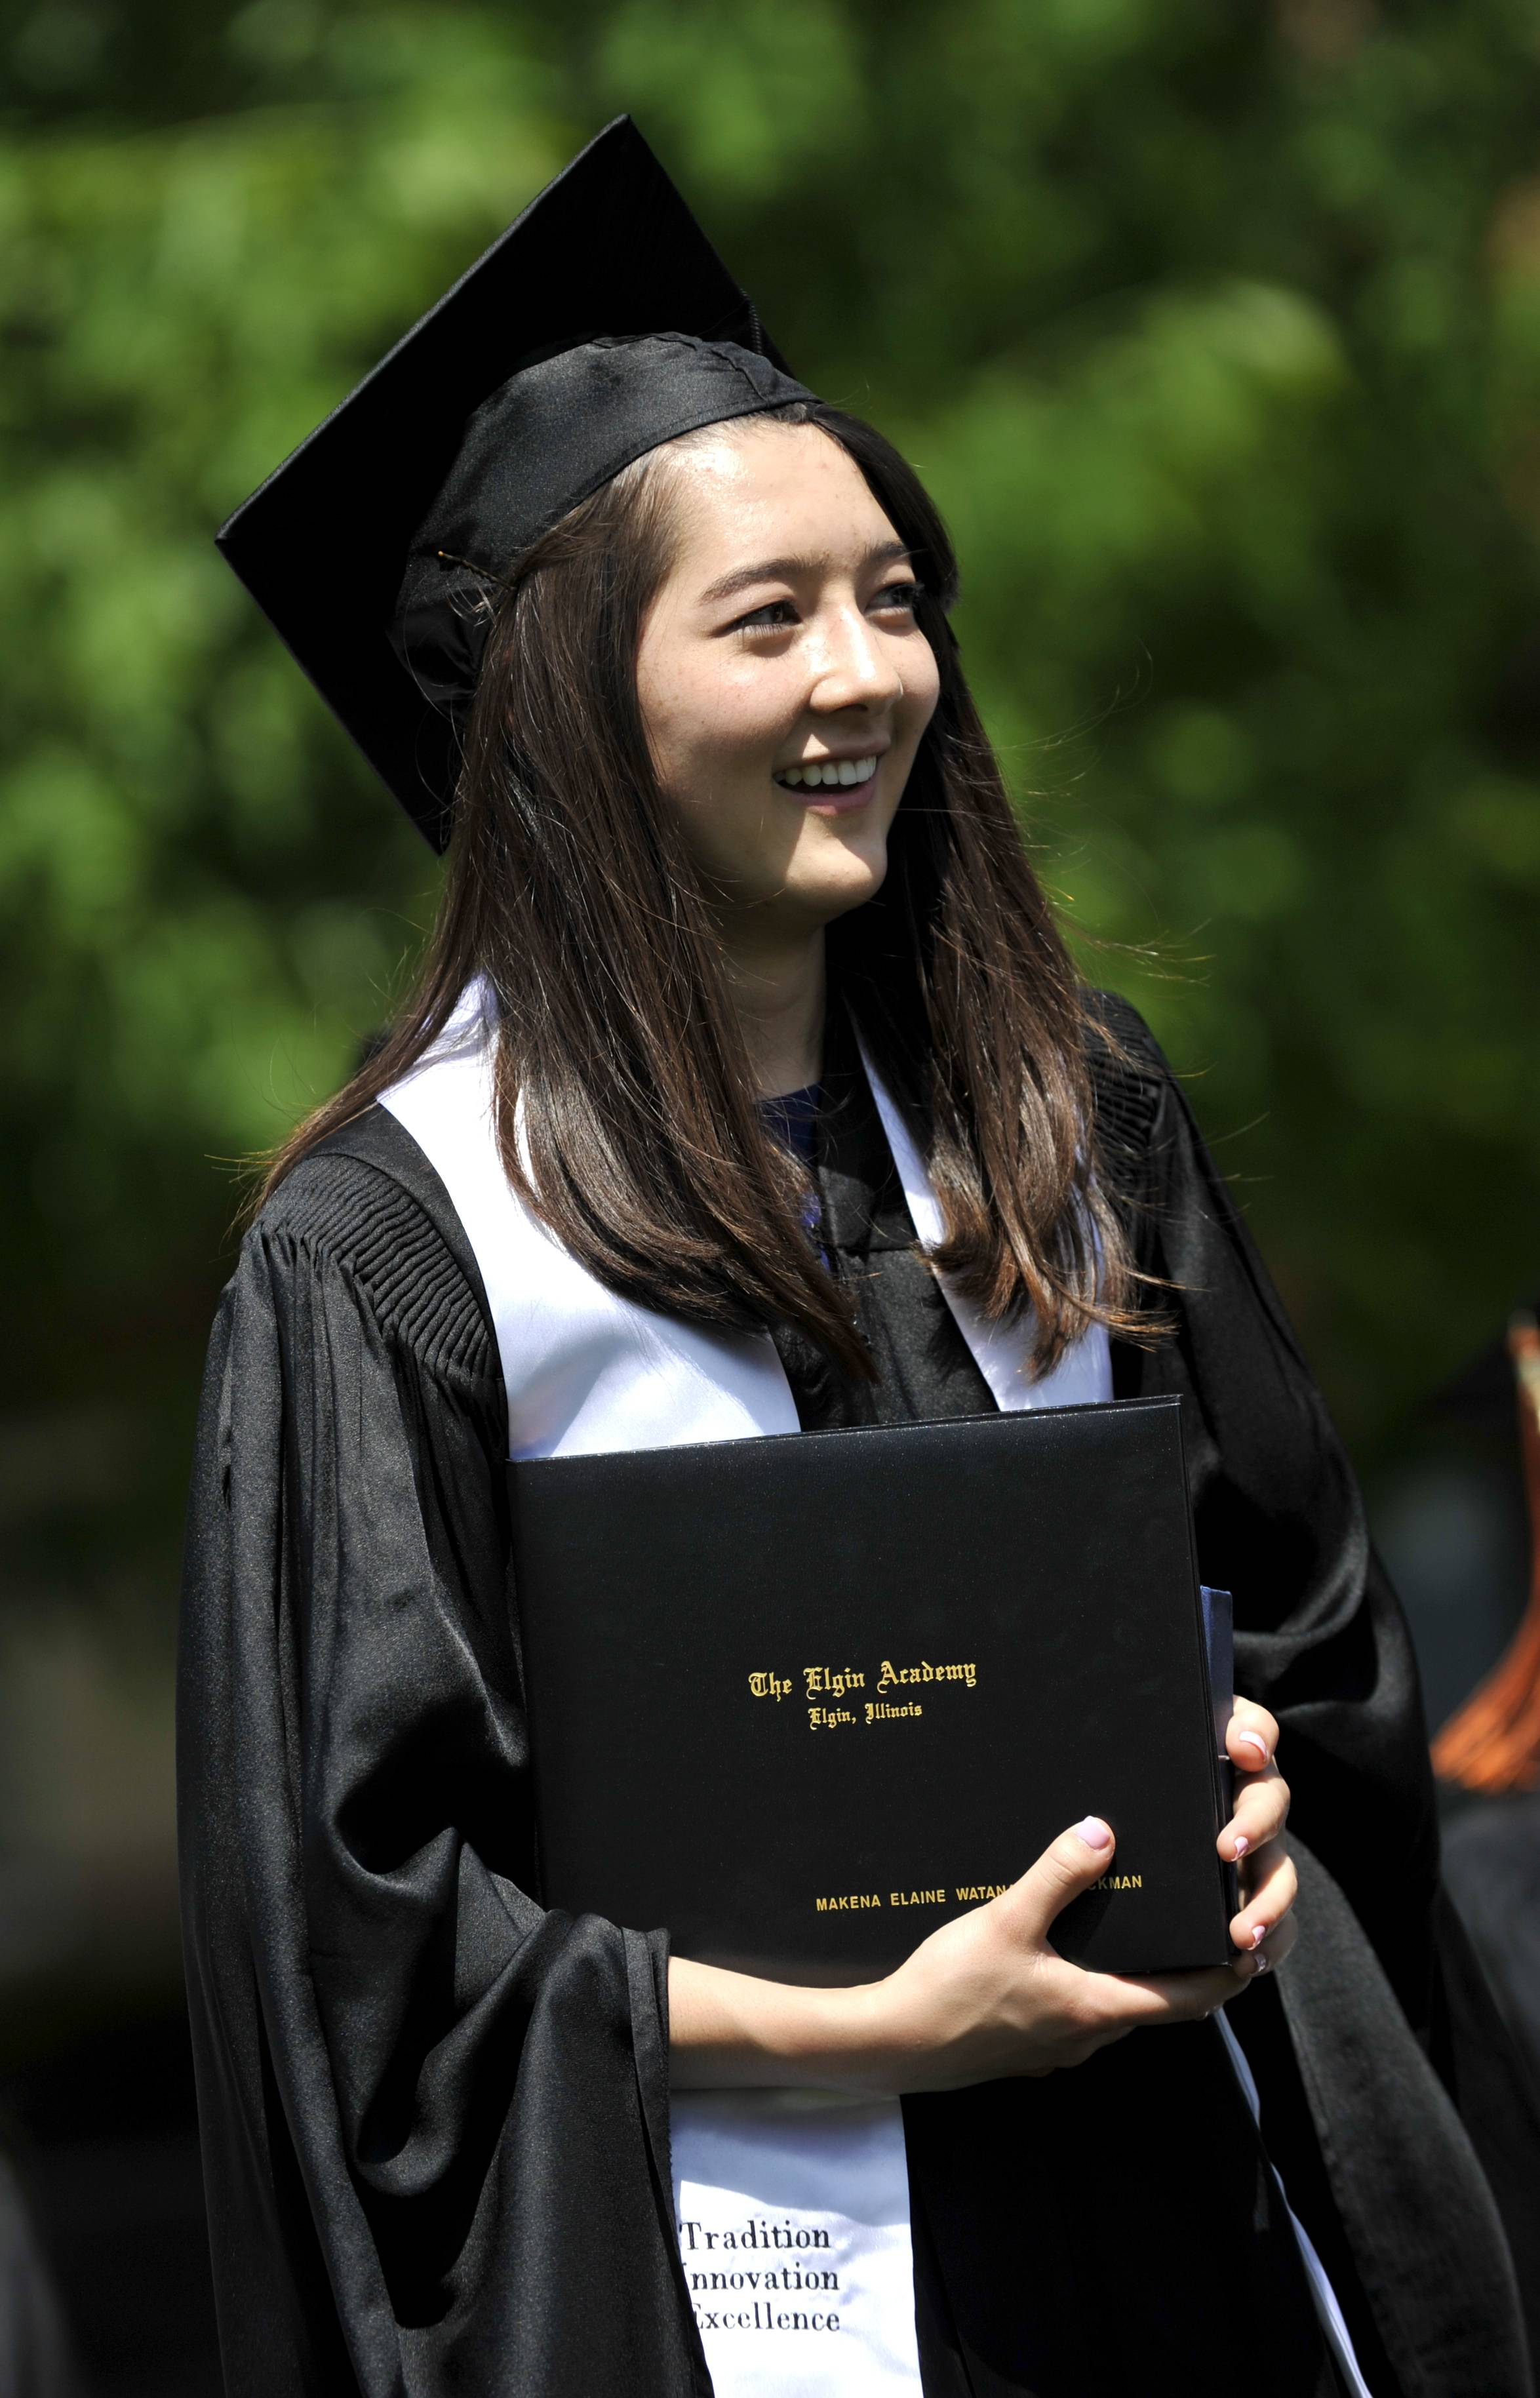 Makena Watanabe Barickman of Geneva smiles at the crowd after receiving her diploma at the Elgin Academy commencement on Saturday, May 30.